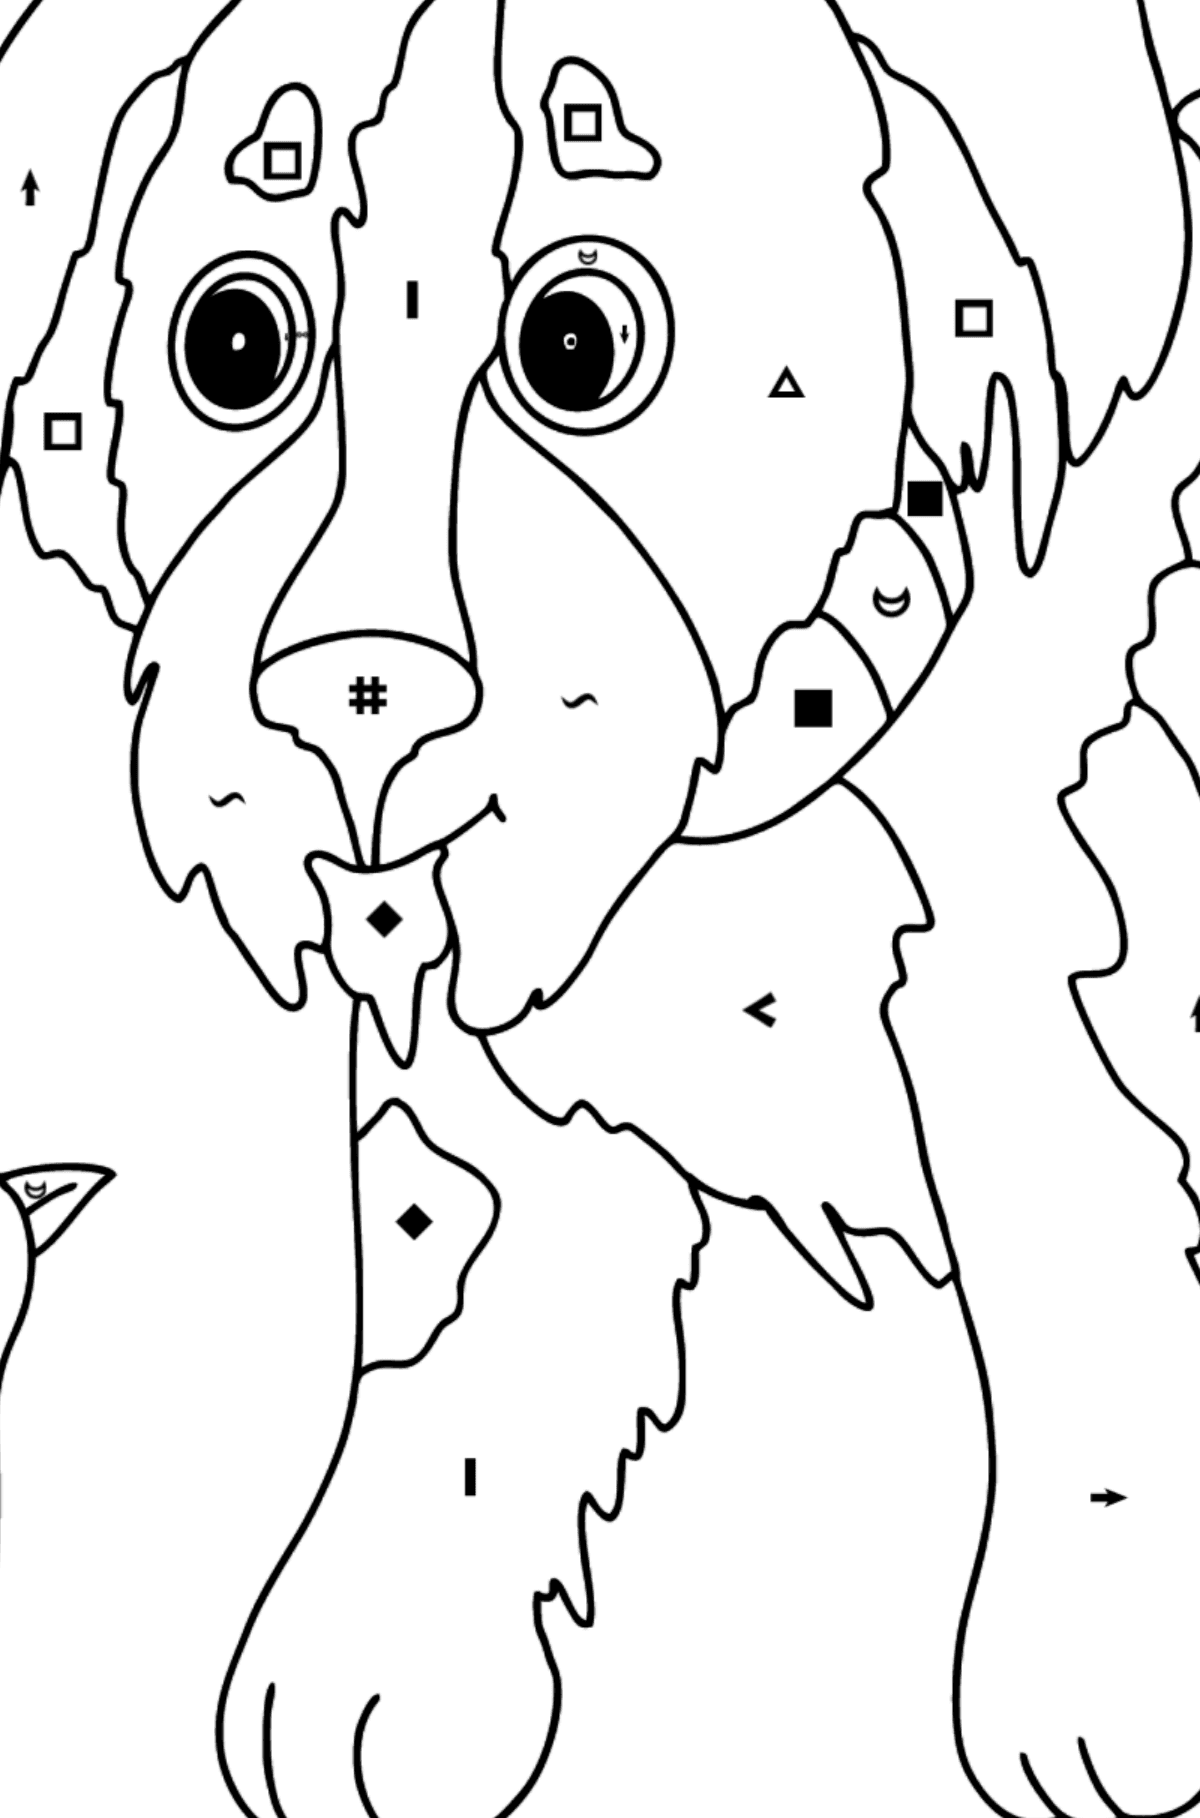 Coloring Page - A Dog is Playing with a Bird - Coloring by Symbols for Kids